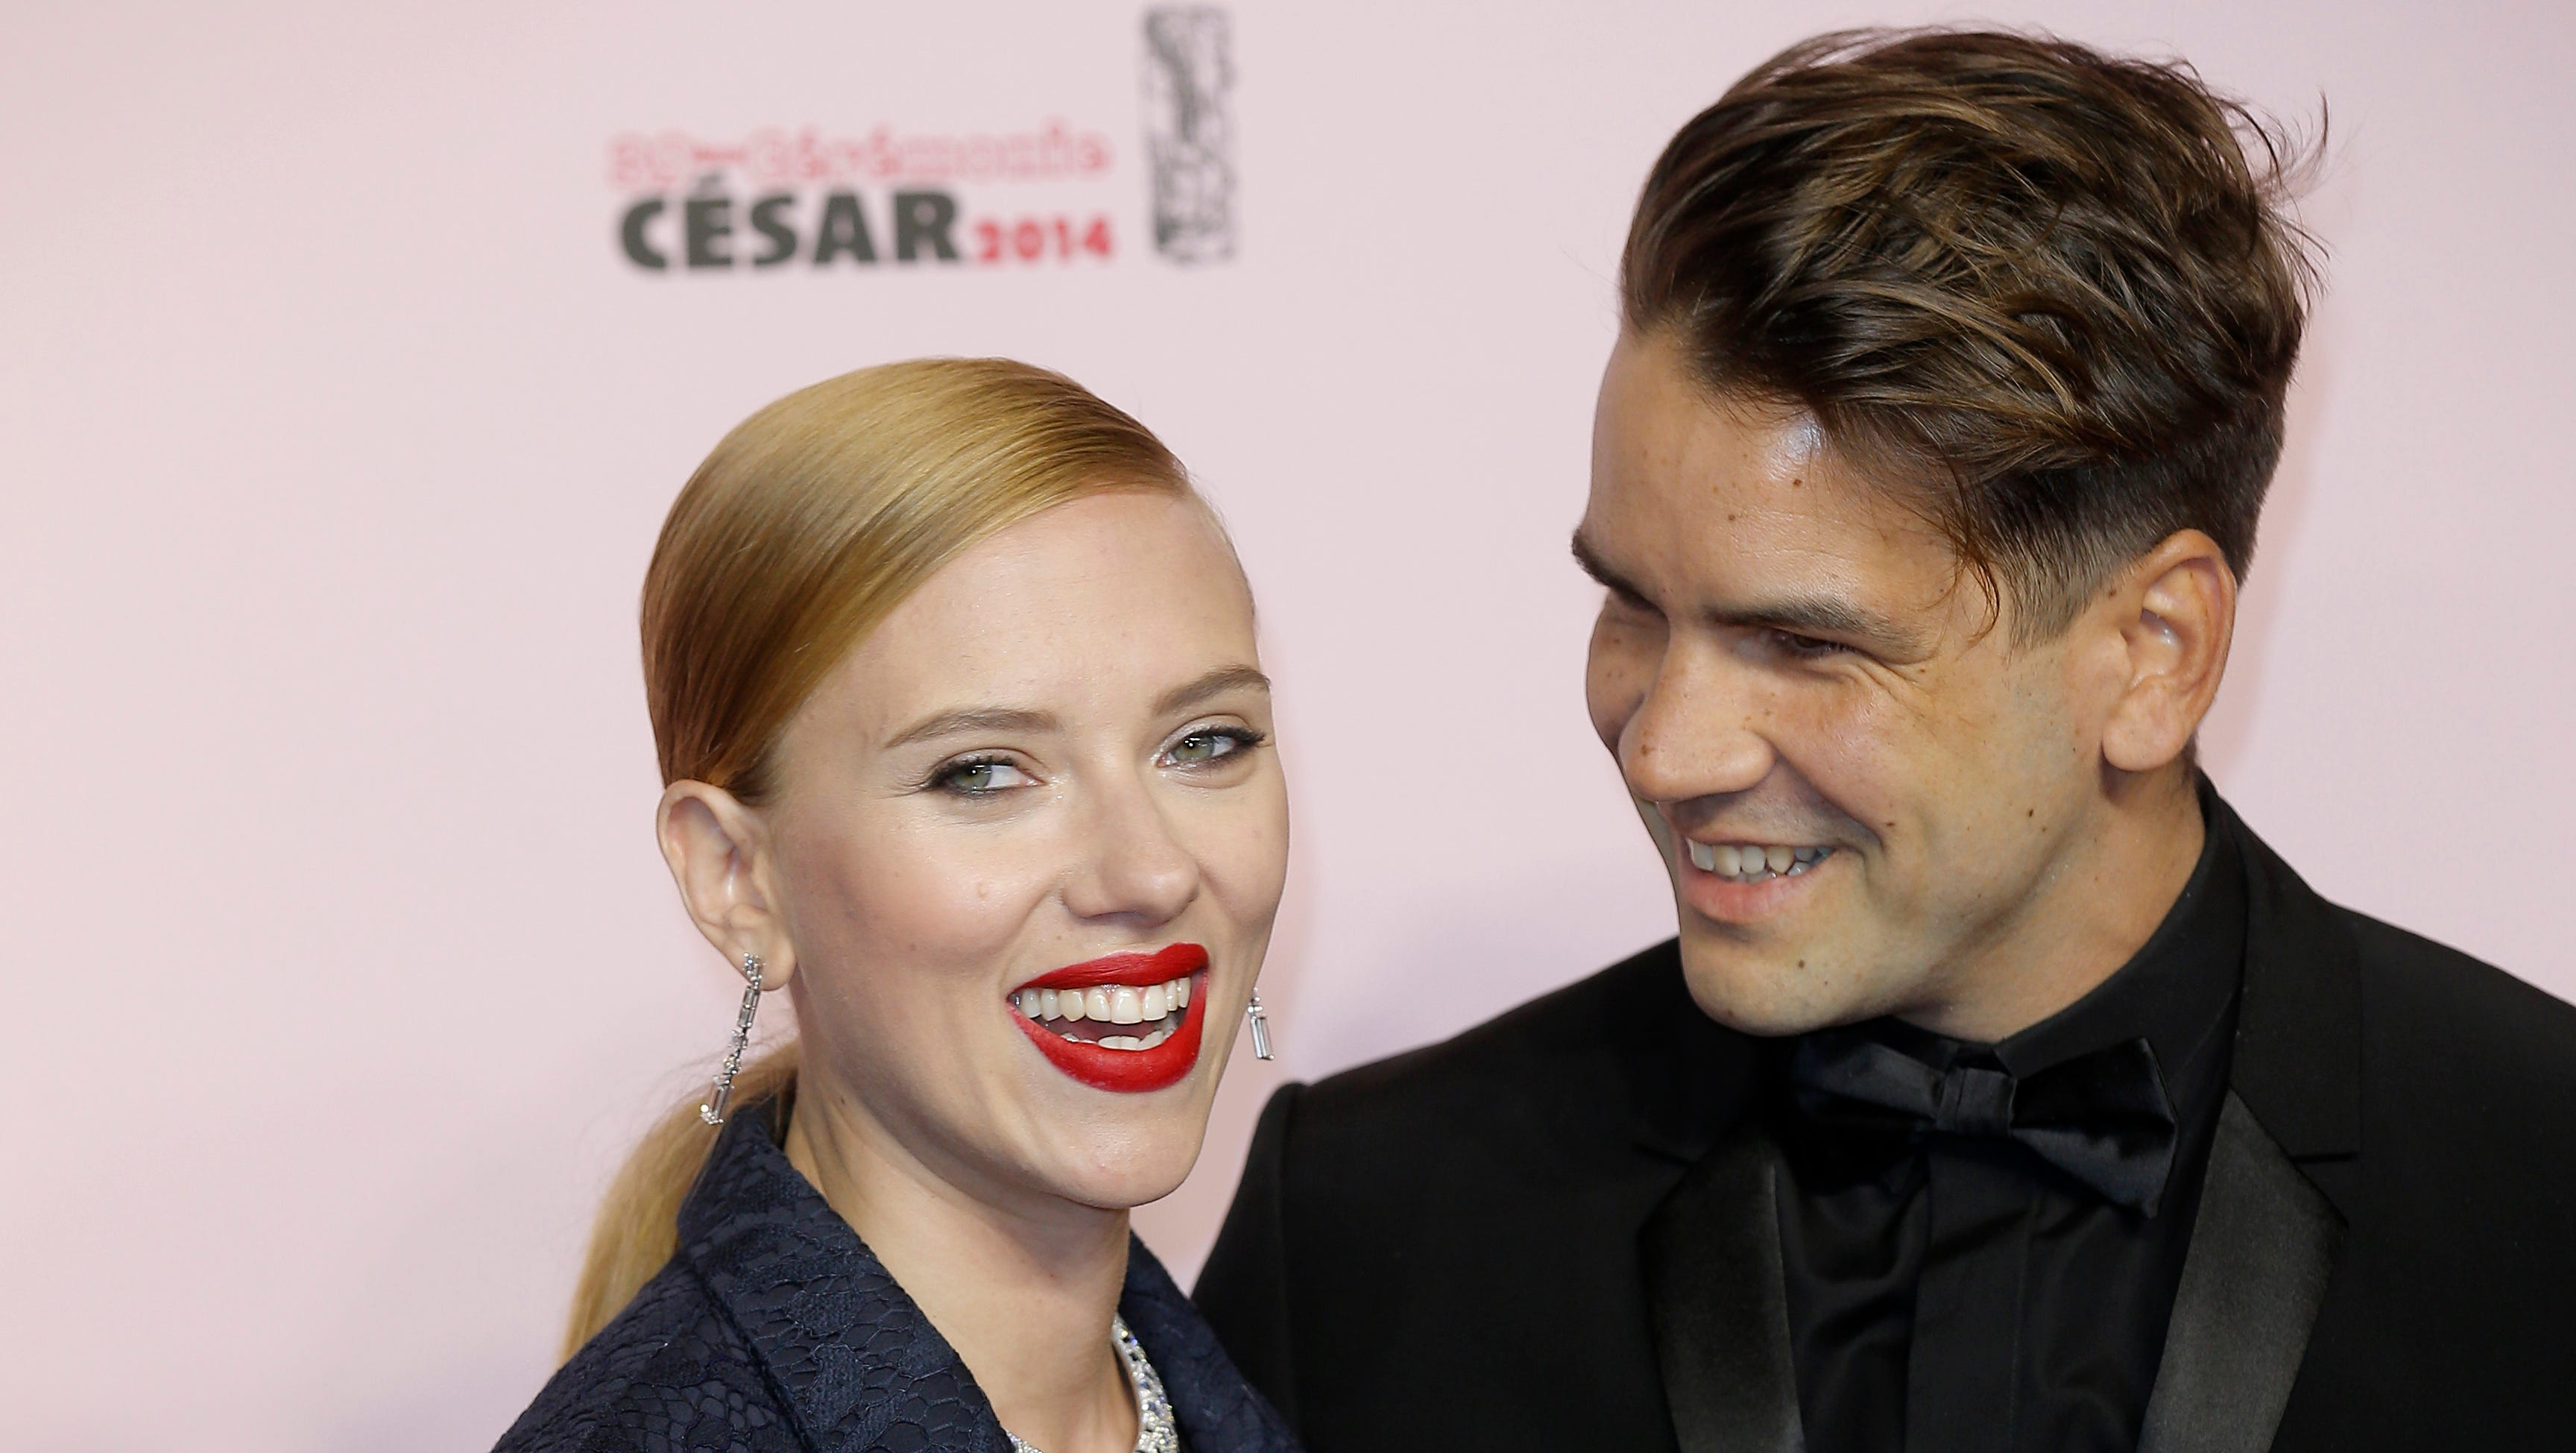 What Did Scarlett Johansson Name Her New Daughter